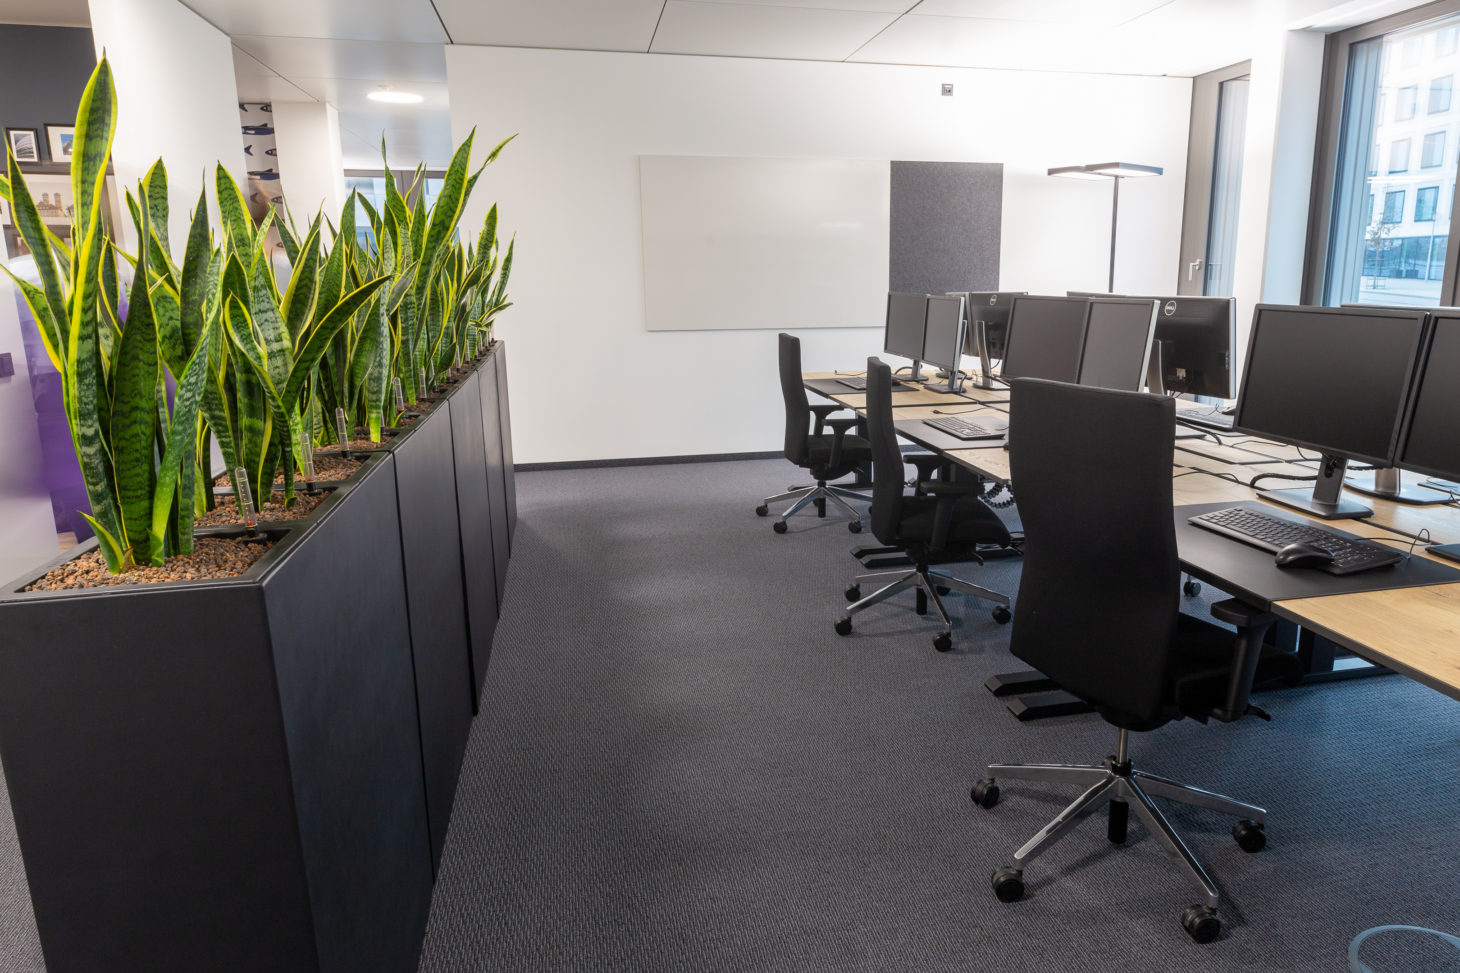 Picture of office space, valantic branch Supply Chain Excellence Munich